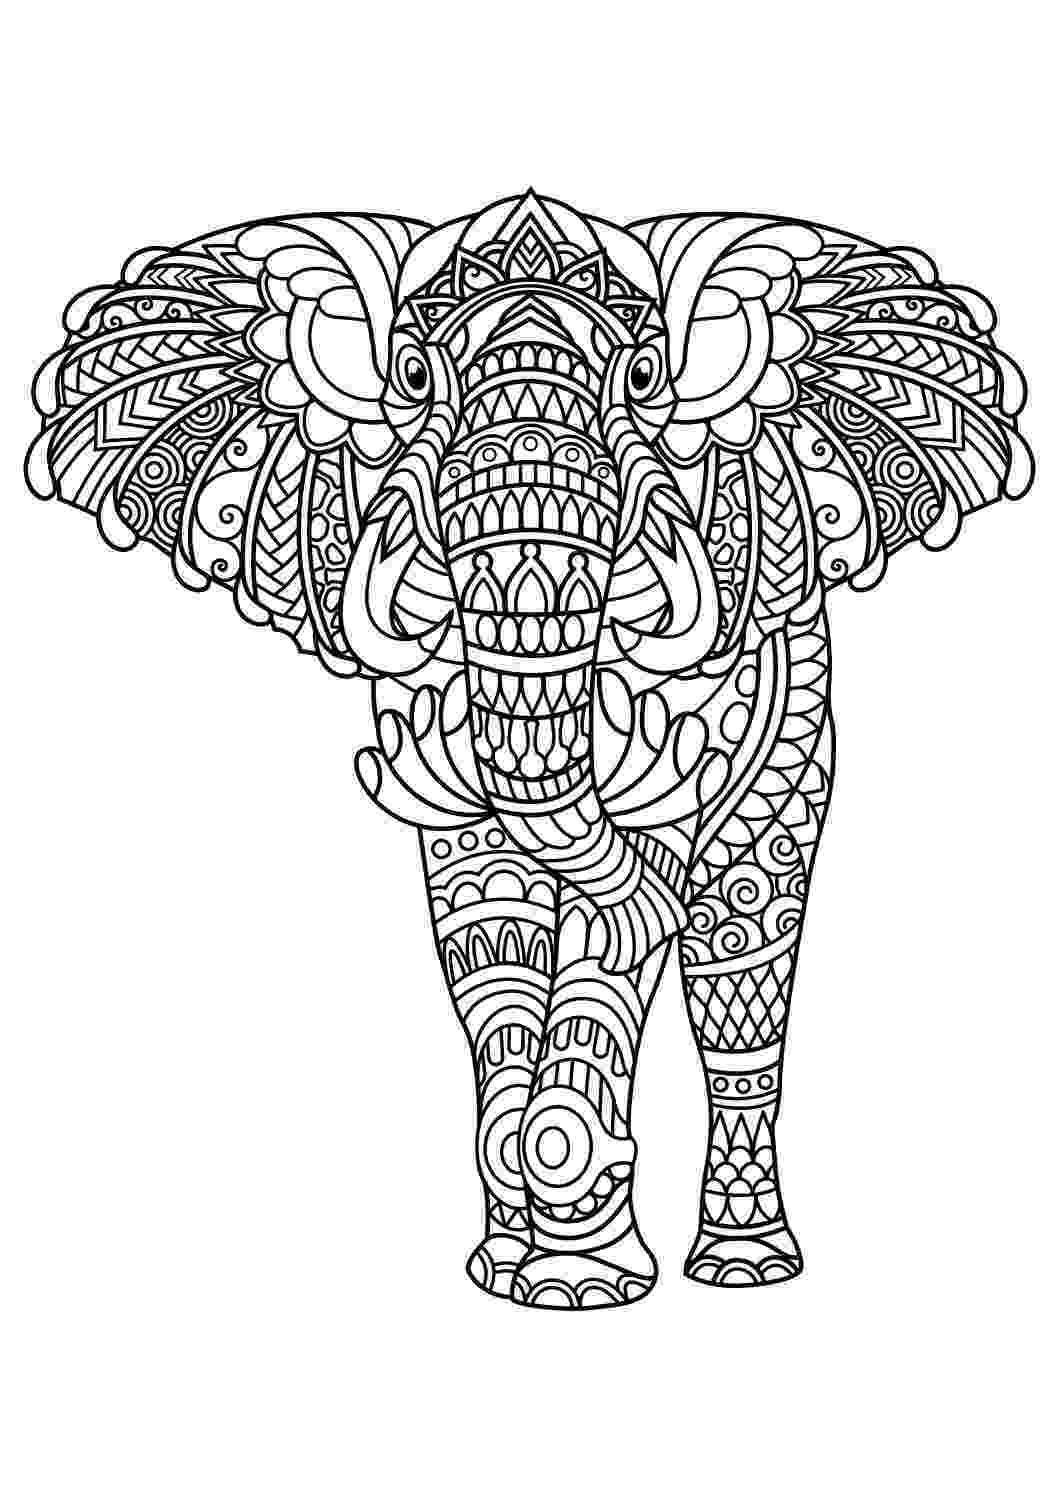 adult coloring pages animals animal coloring pages pdf lion coloring pages mandala pages animals adult coloring